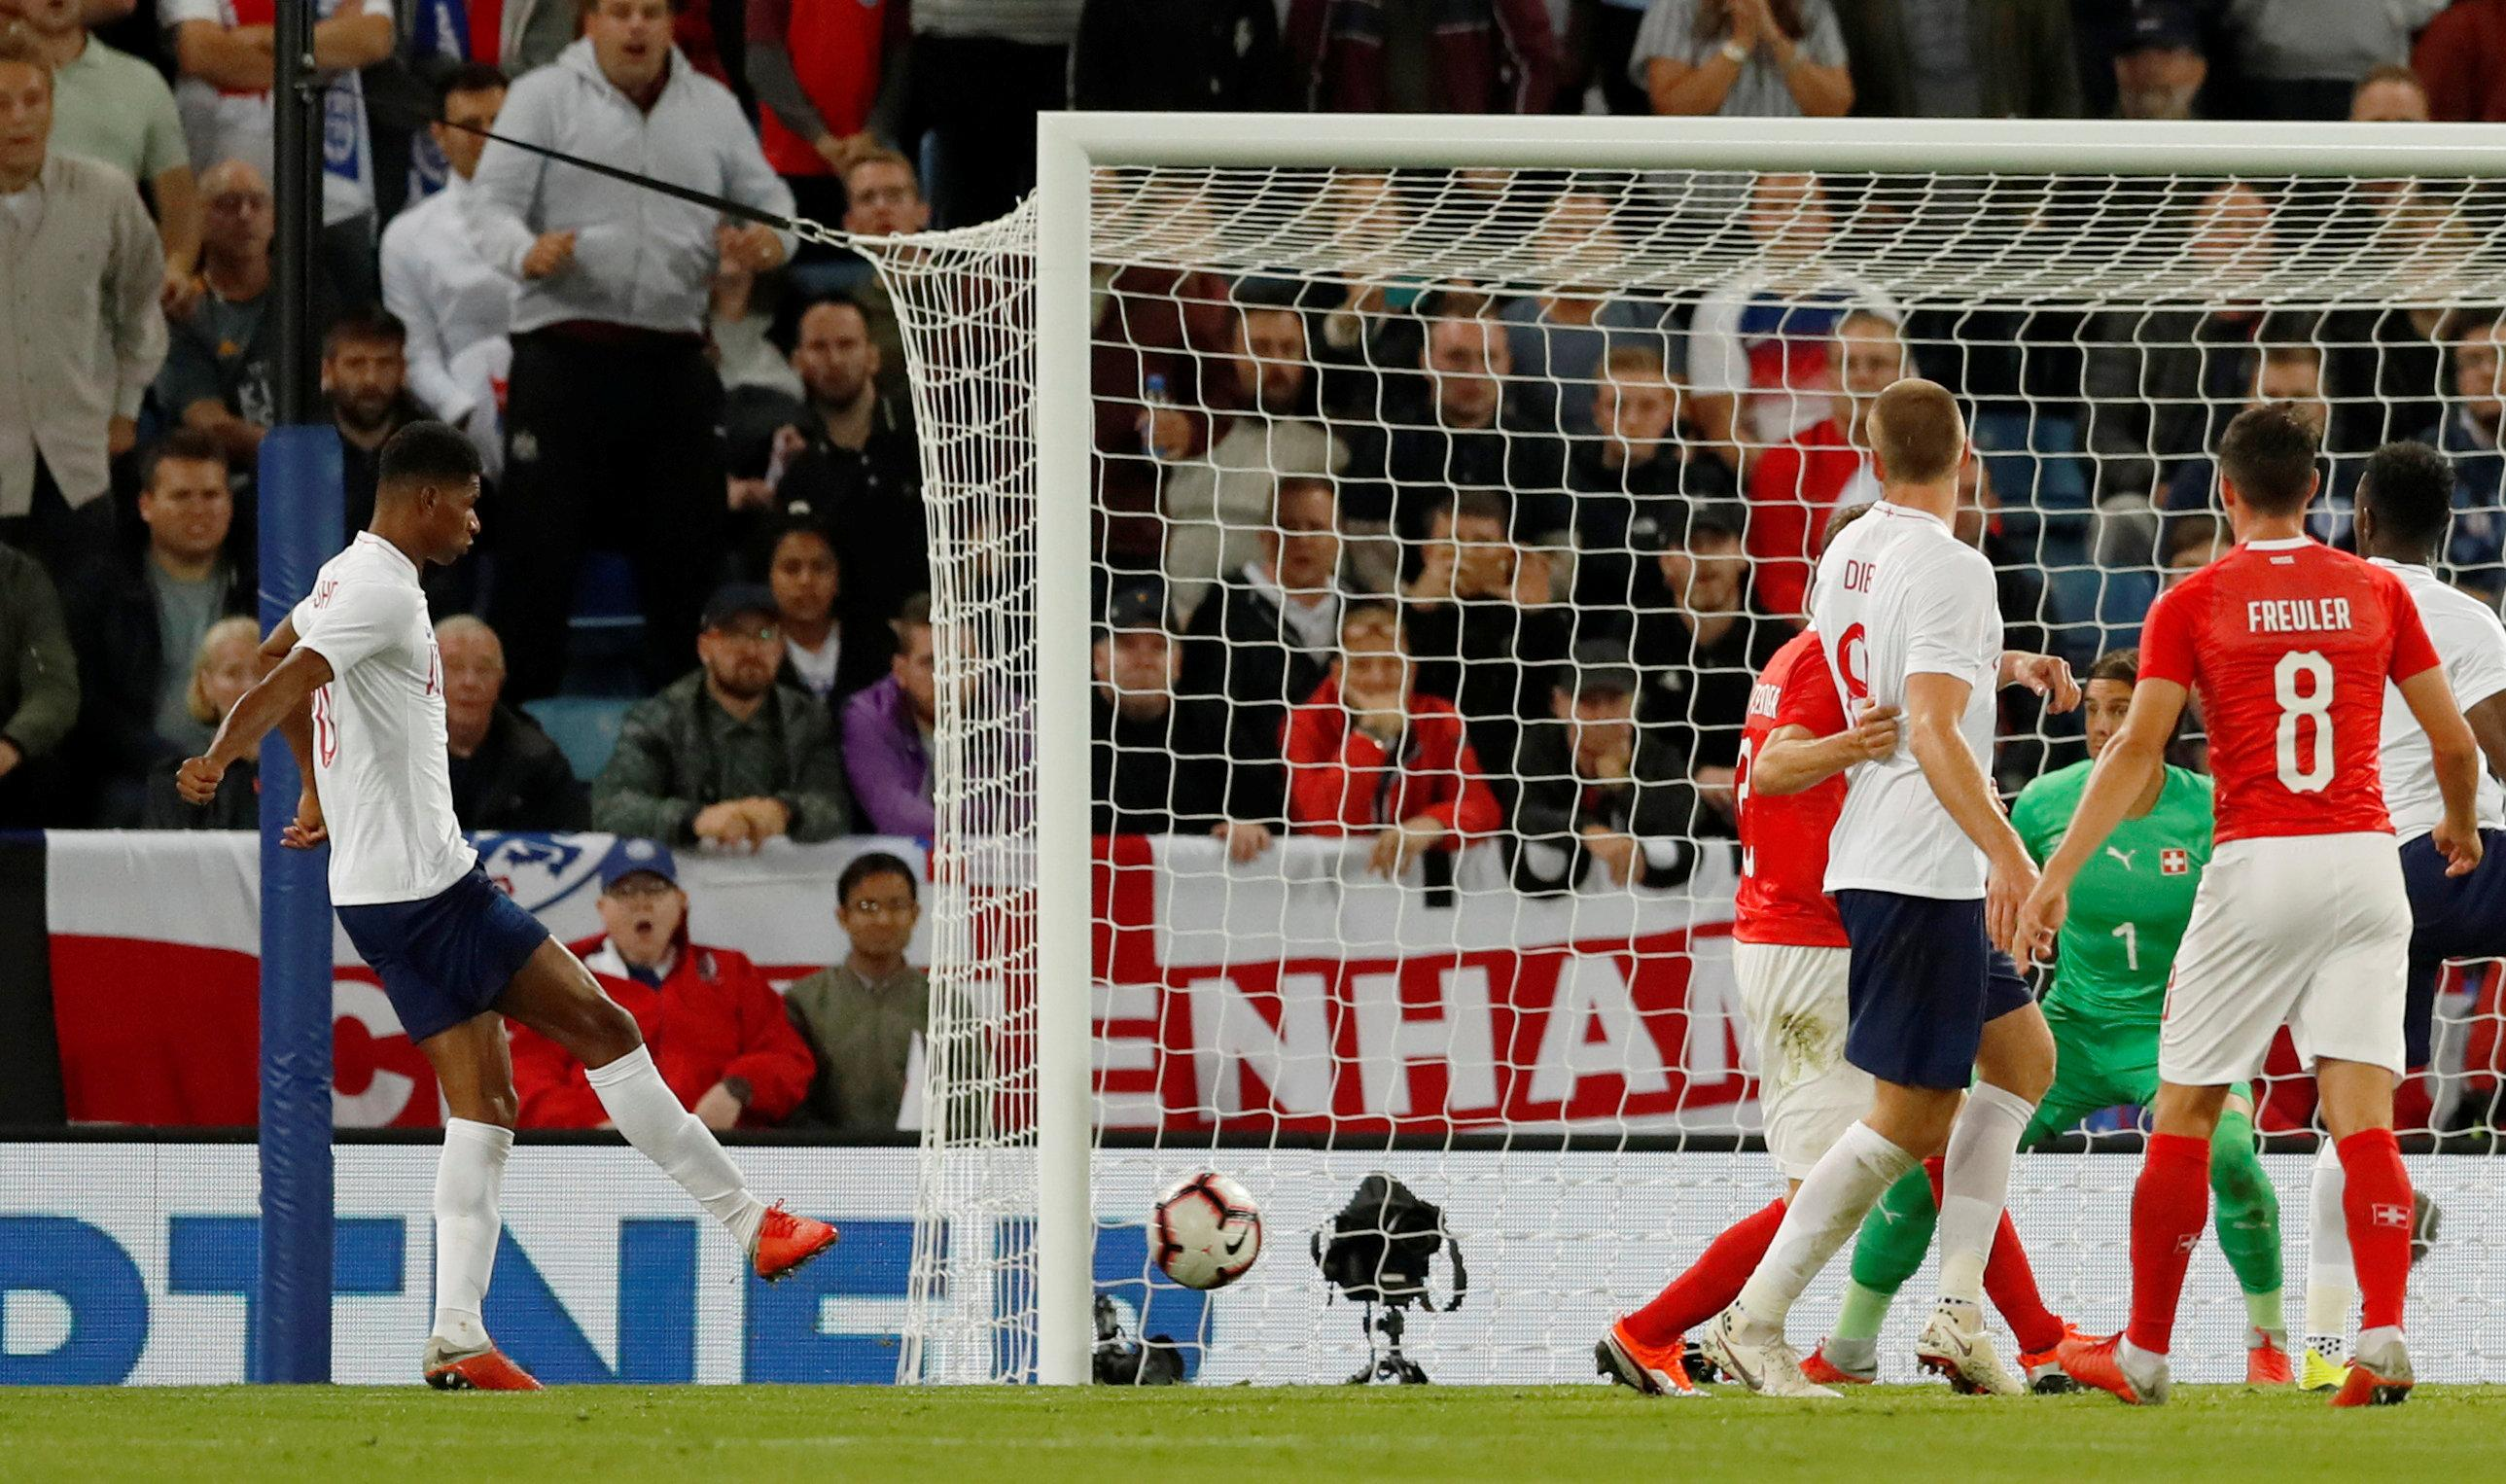 Marcus Rashford got his second goal in as many games after putting the Three Lions ahead against Spain at Wembley